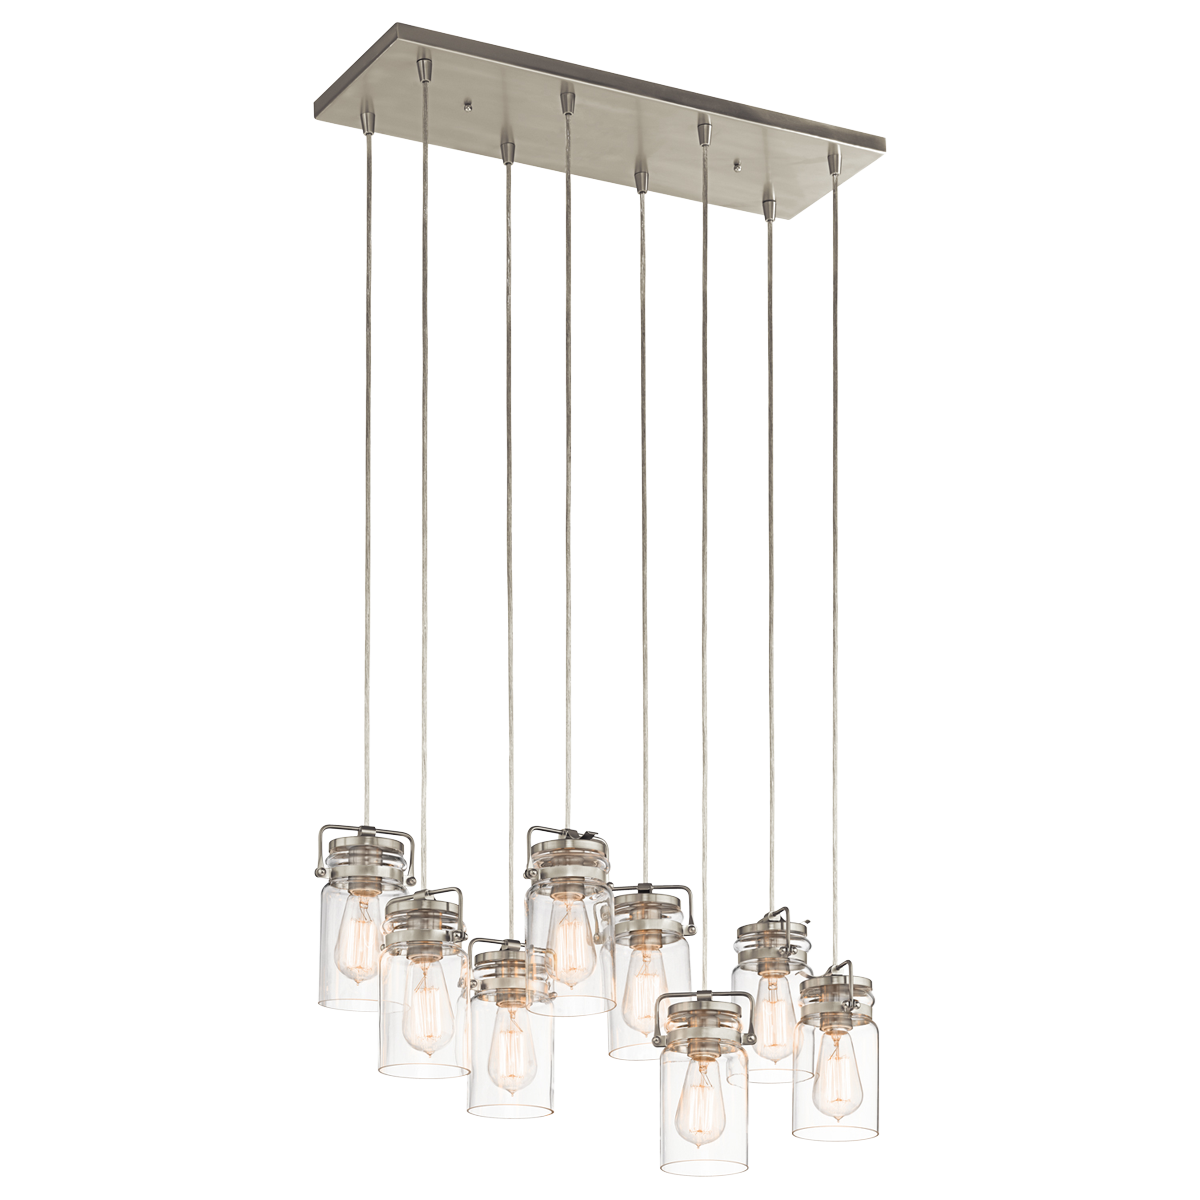 Brushed Nickel Dining Room Light Fixtures Brinley 8 Light Pendant  Brushed Nickel Dining Room  Home